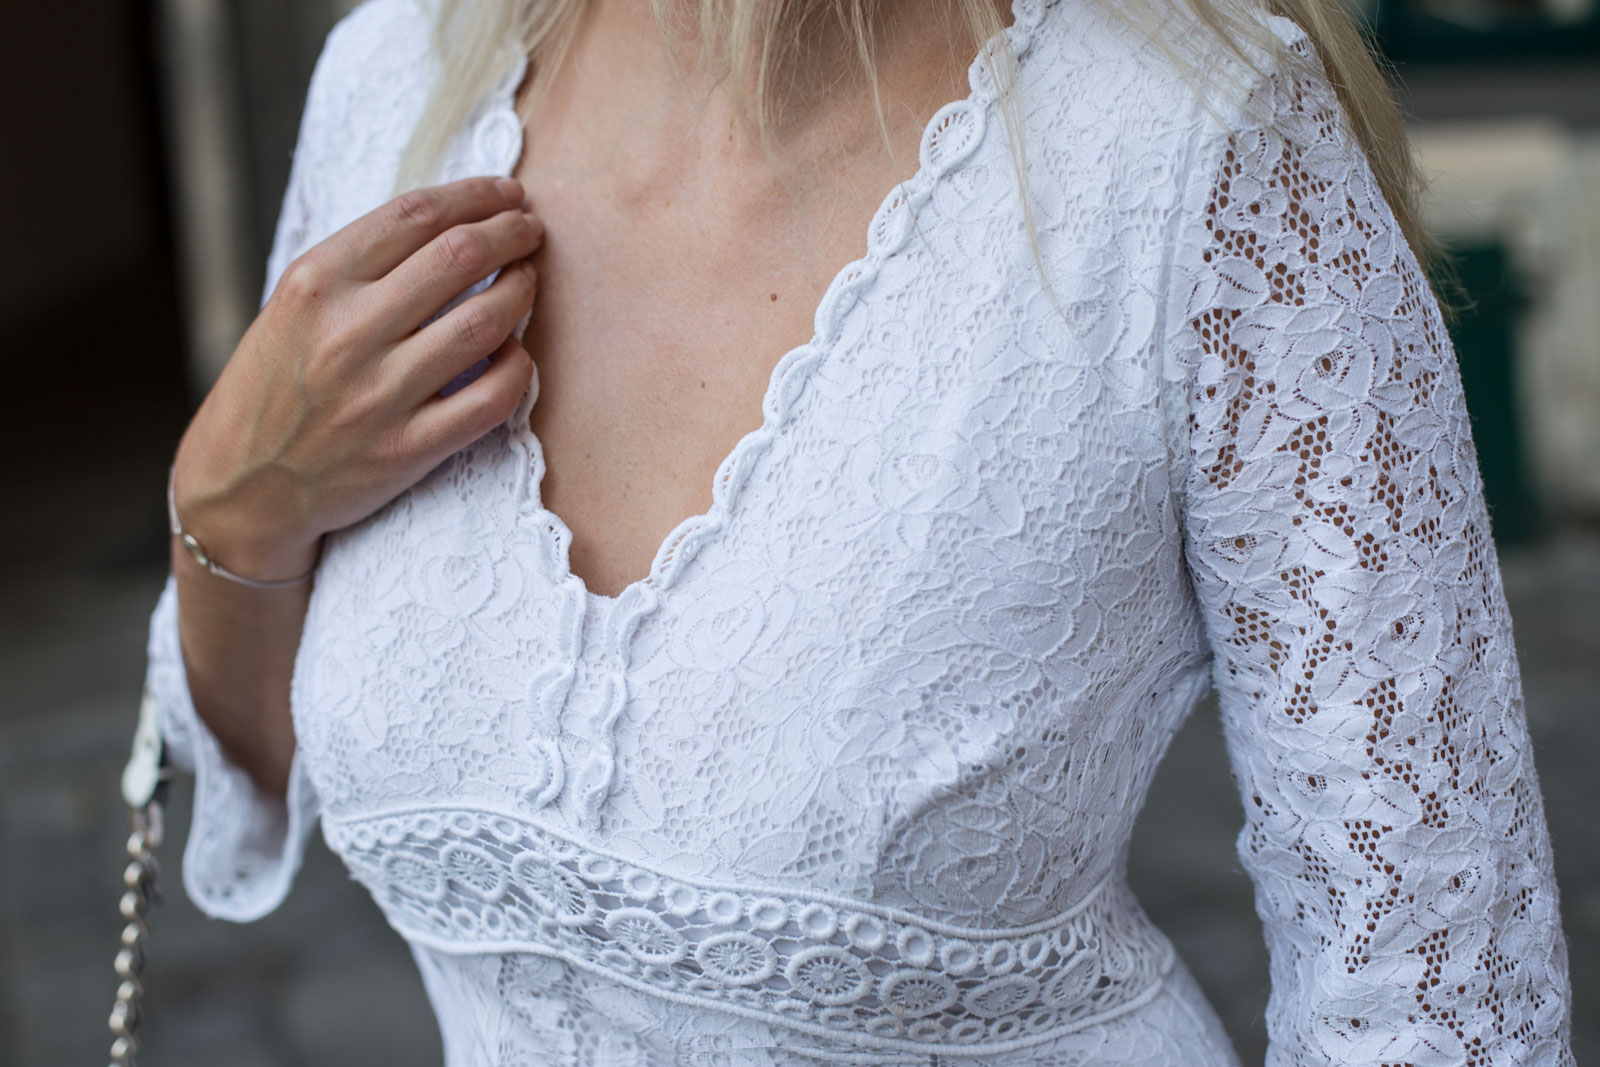 how-to-wear.lace-Foto_by_Nadja_Nemetz_Wien_Outfit_Fashion_Mode_Modeblogger_Blogger_qweiß_weiss_Spitzenkleid_Lace_dress_lacedress_how_to_wear_styleguide_guess_bag_tasche_highheels_high_heels_nude_buffalo_8